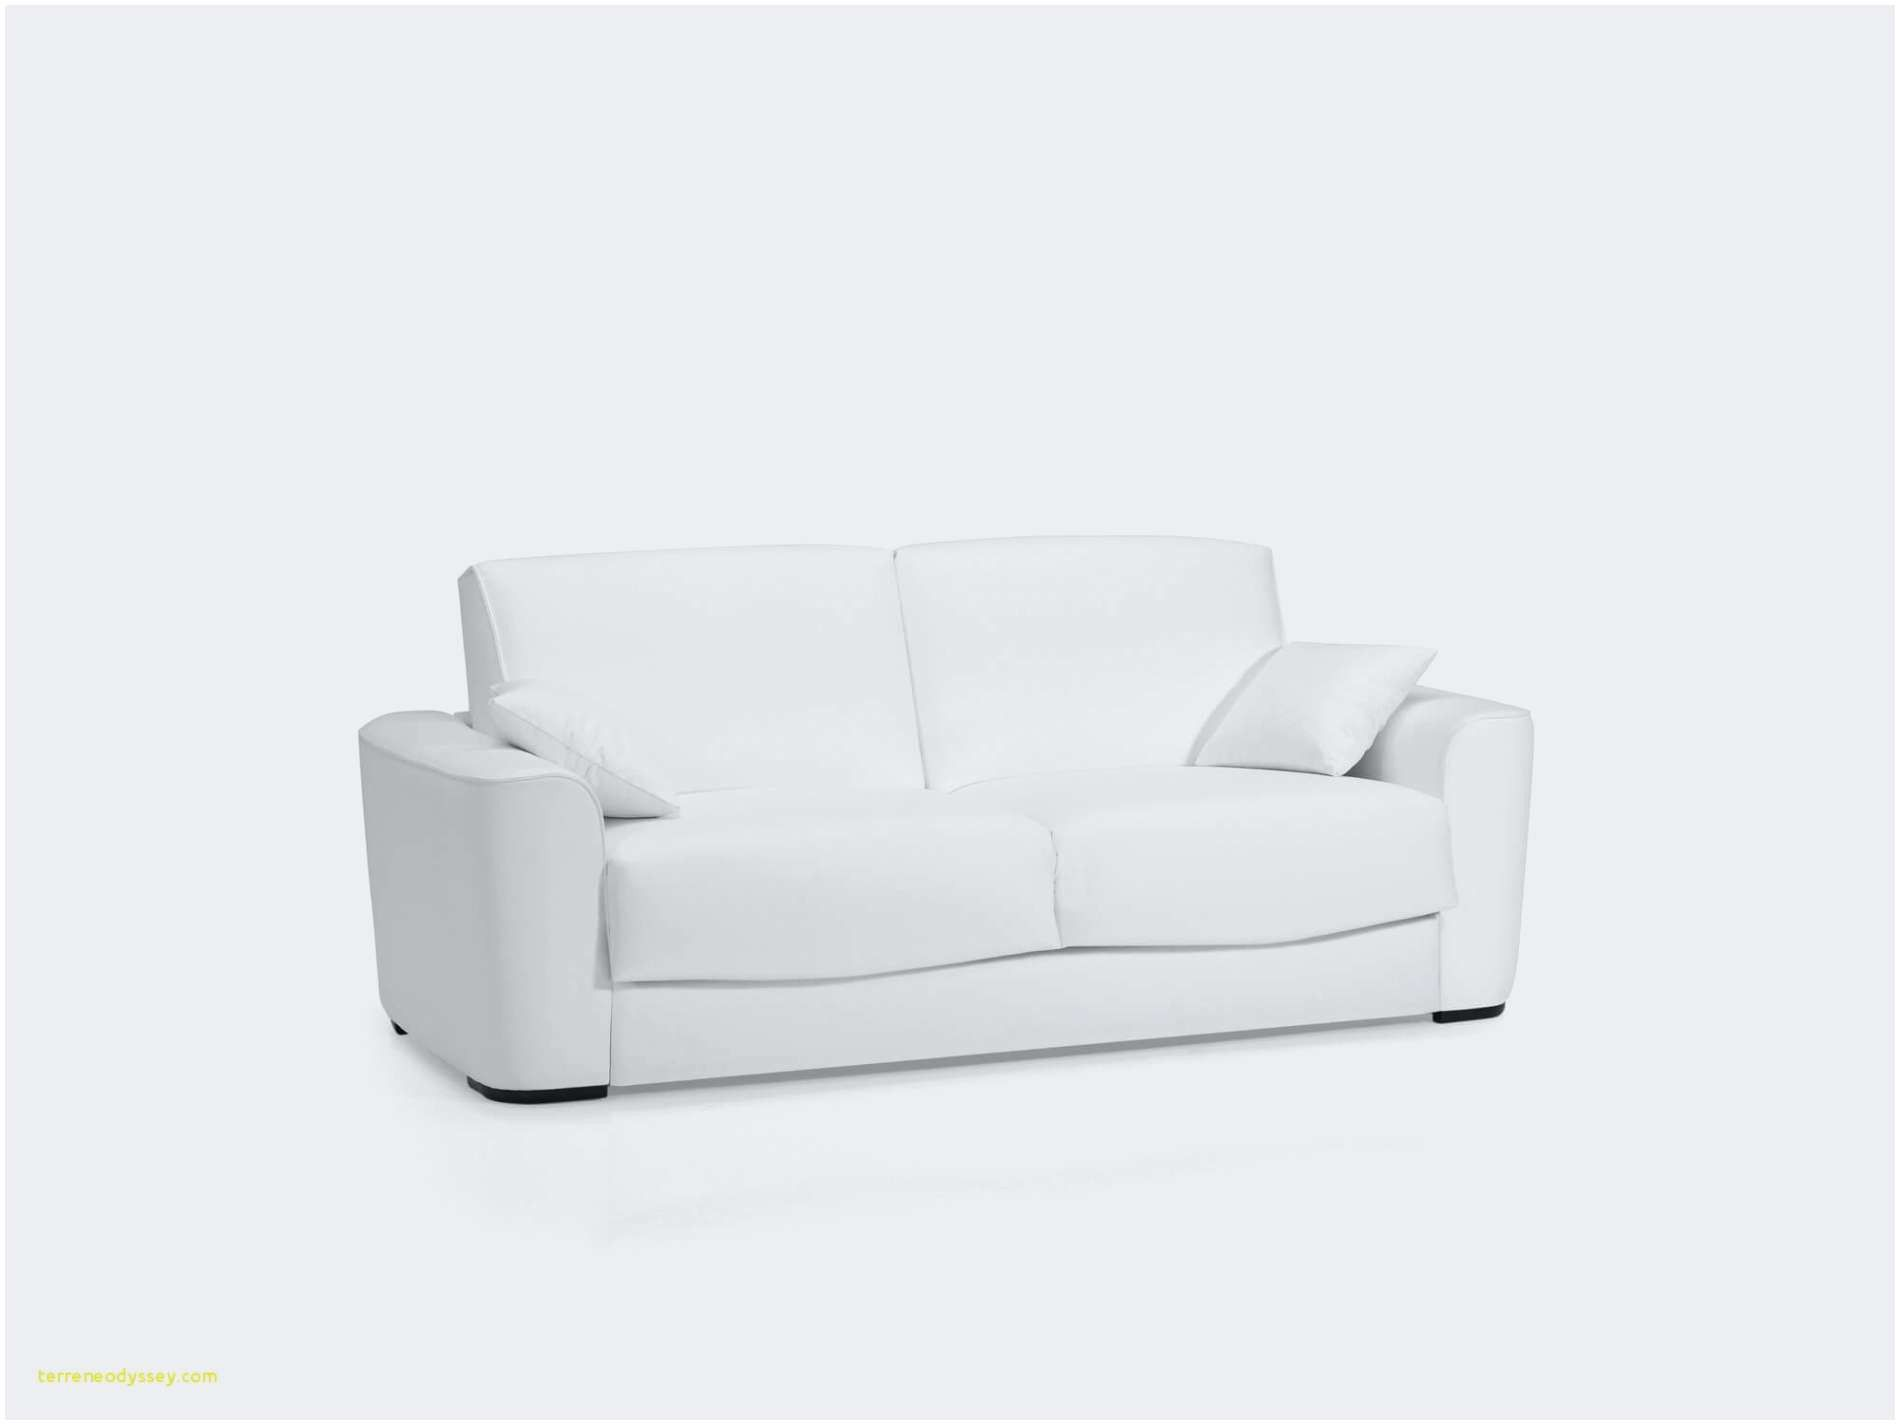 Luxe Recouvrir Canape Idees Canape Angle Meuble Tv Moderne Canape Angle Convertible